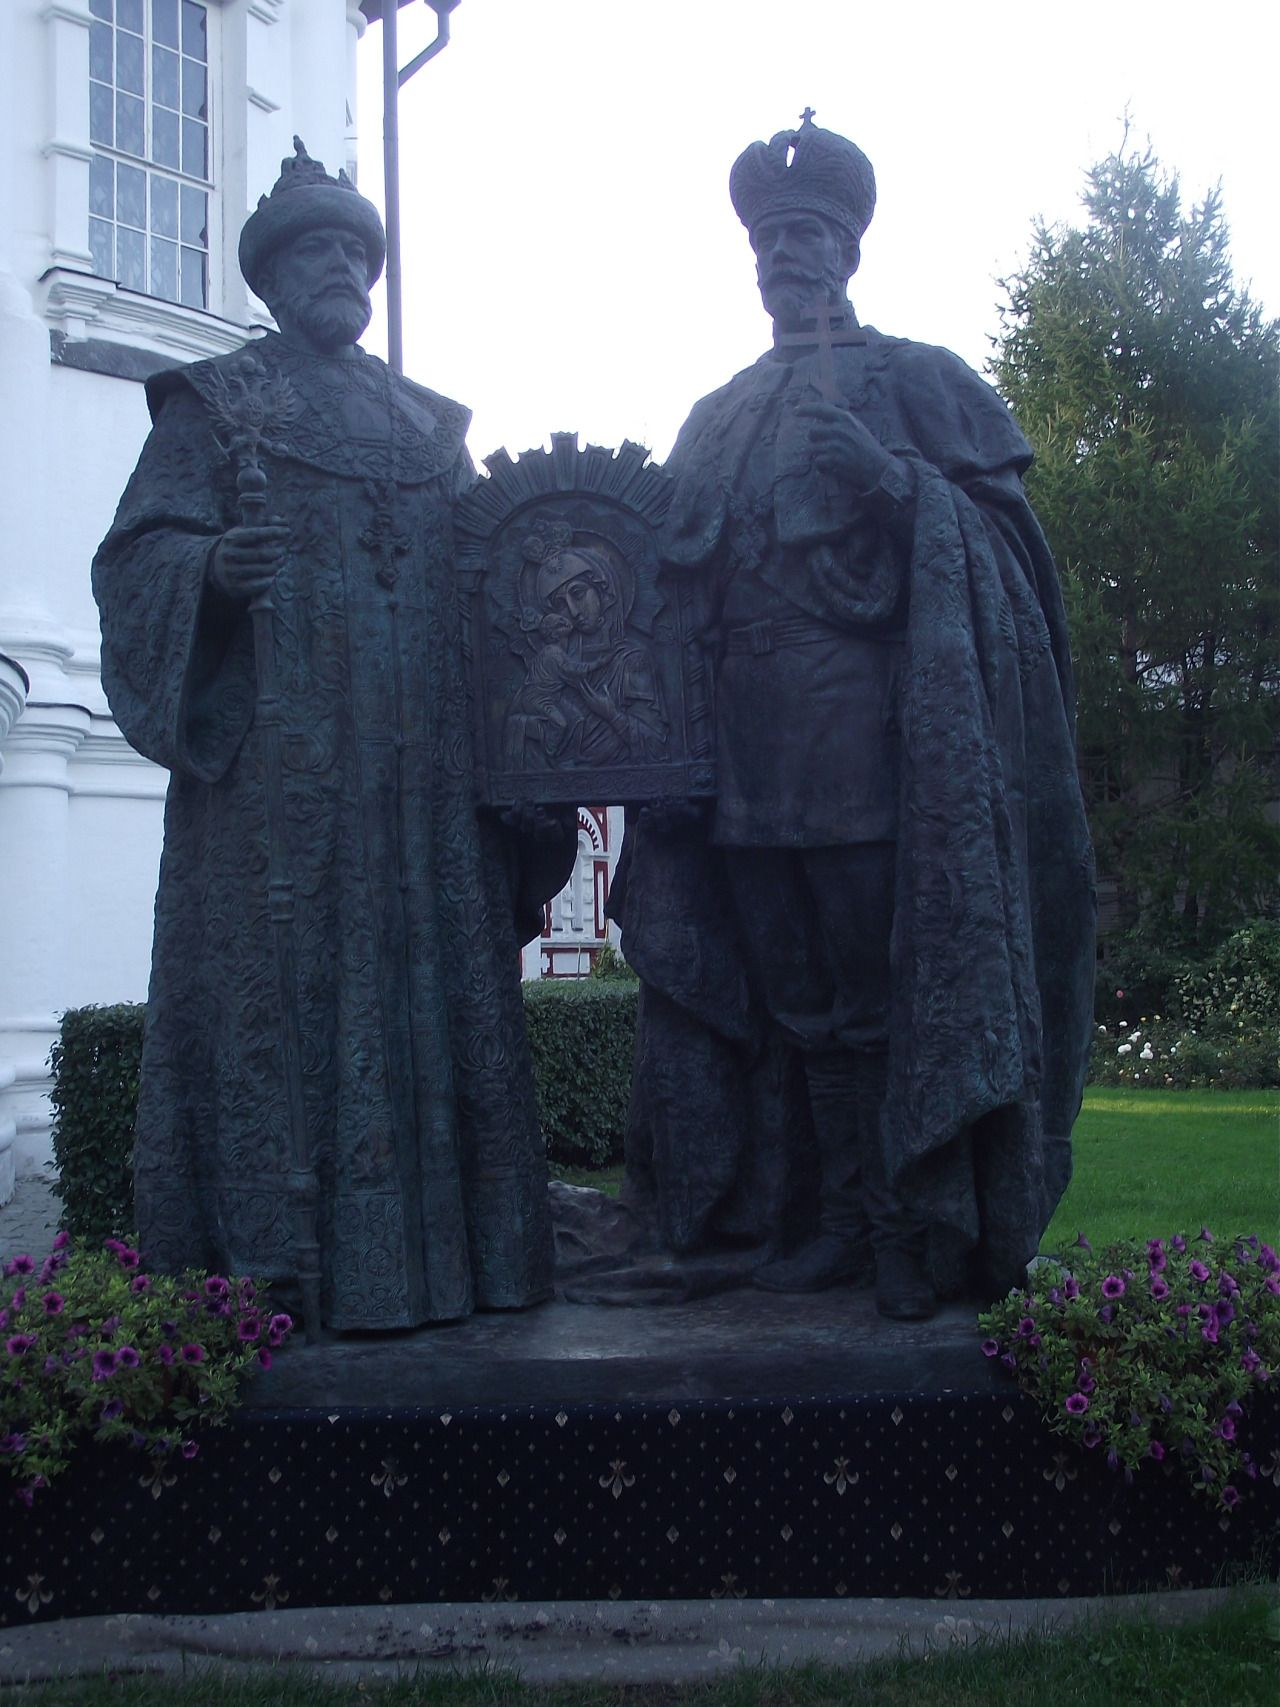 Statue of the first (Mikhail I) and last (Nicholas II) Romanov tsars at the Novospassky Monastery in the southeast of Moscow. Erected in 2013 to commemorate the 400th anniversary of Mikhail's...